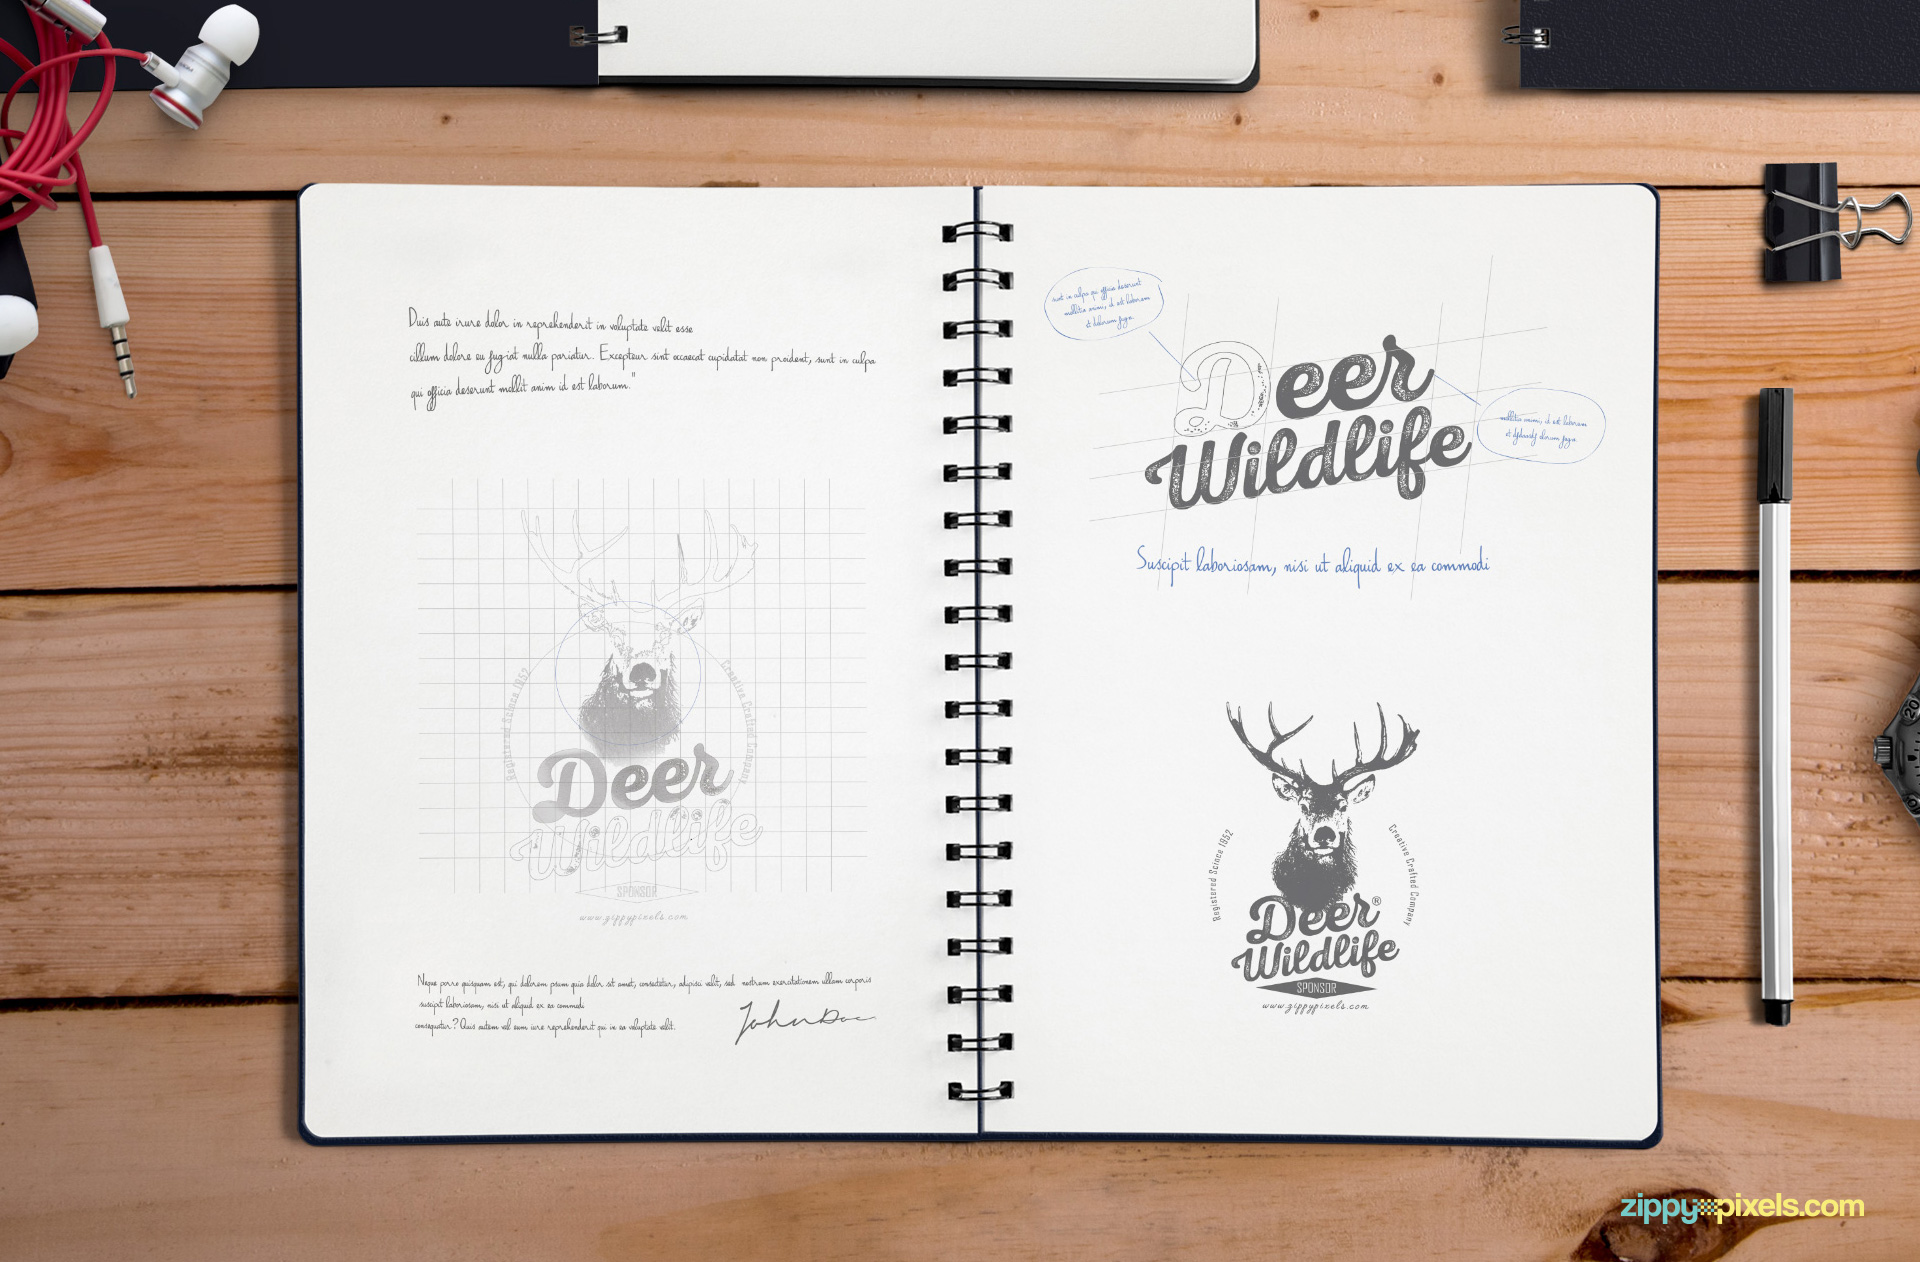 cool drawings on notebook paper